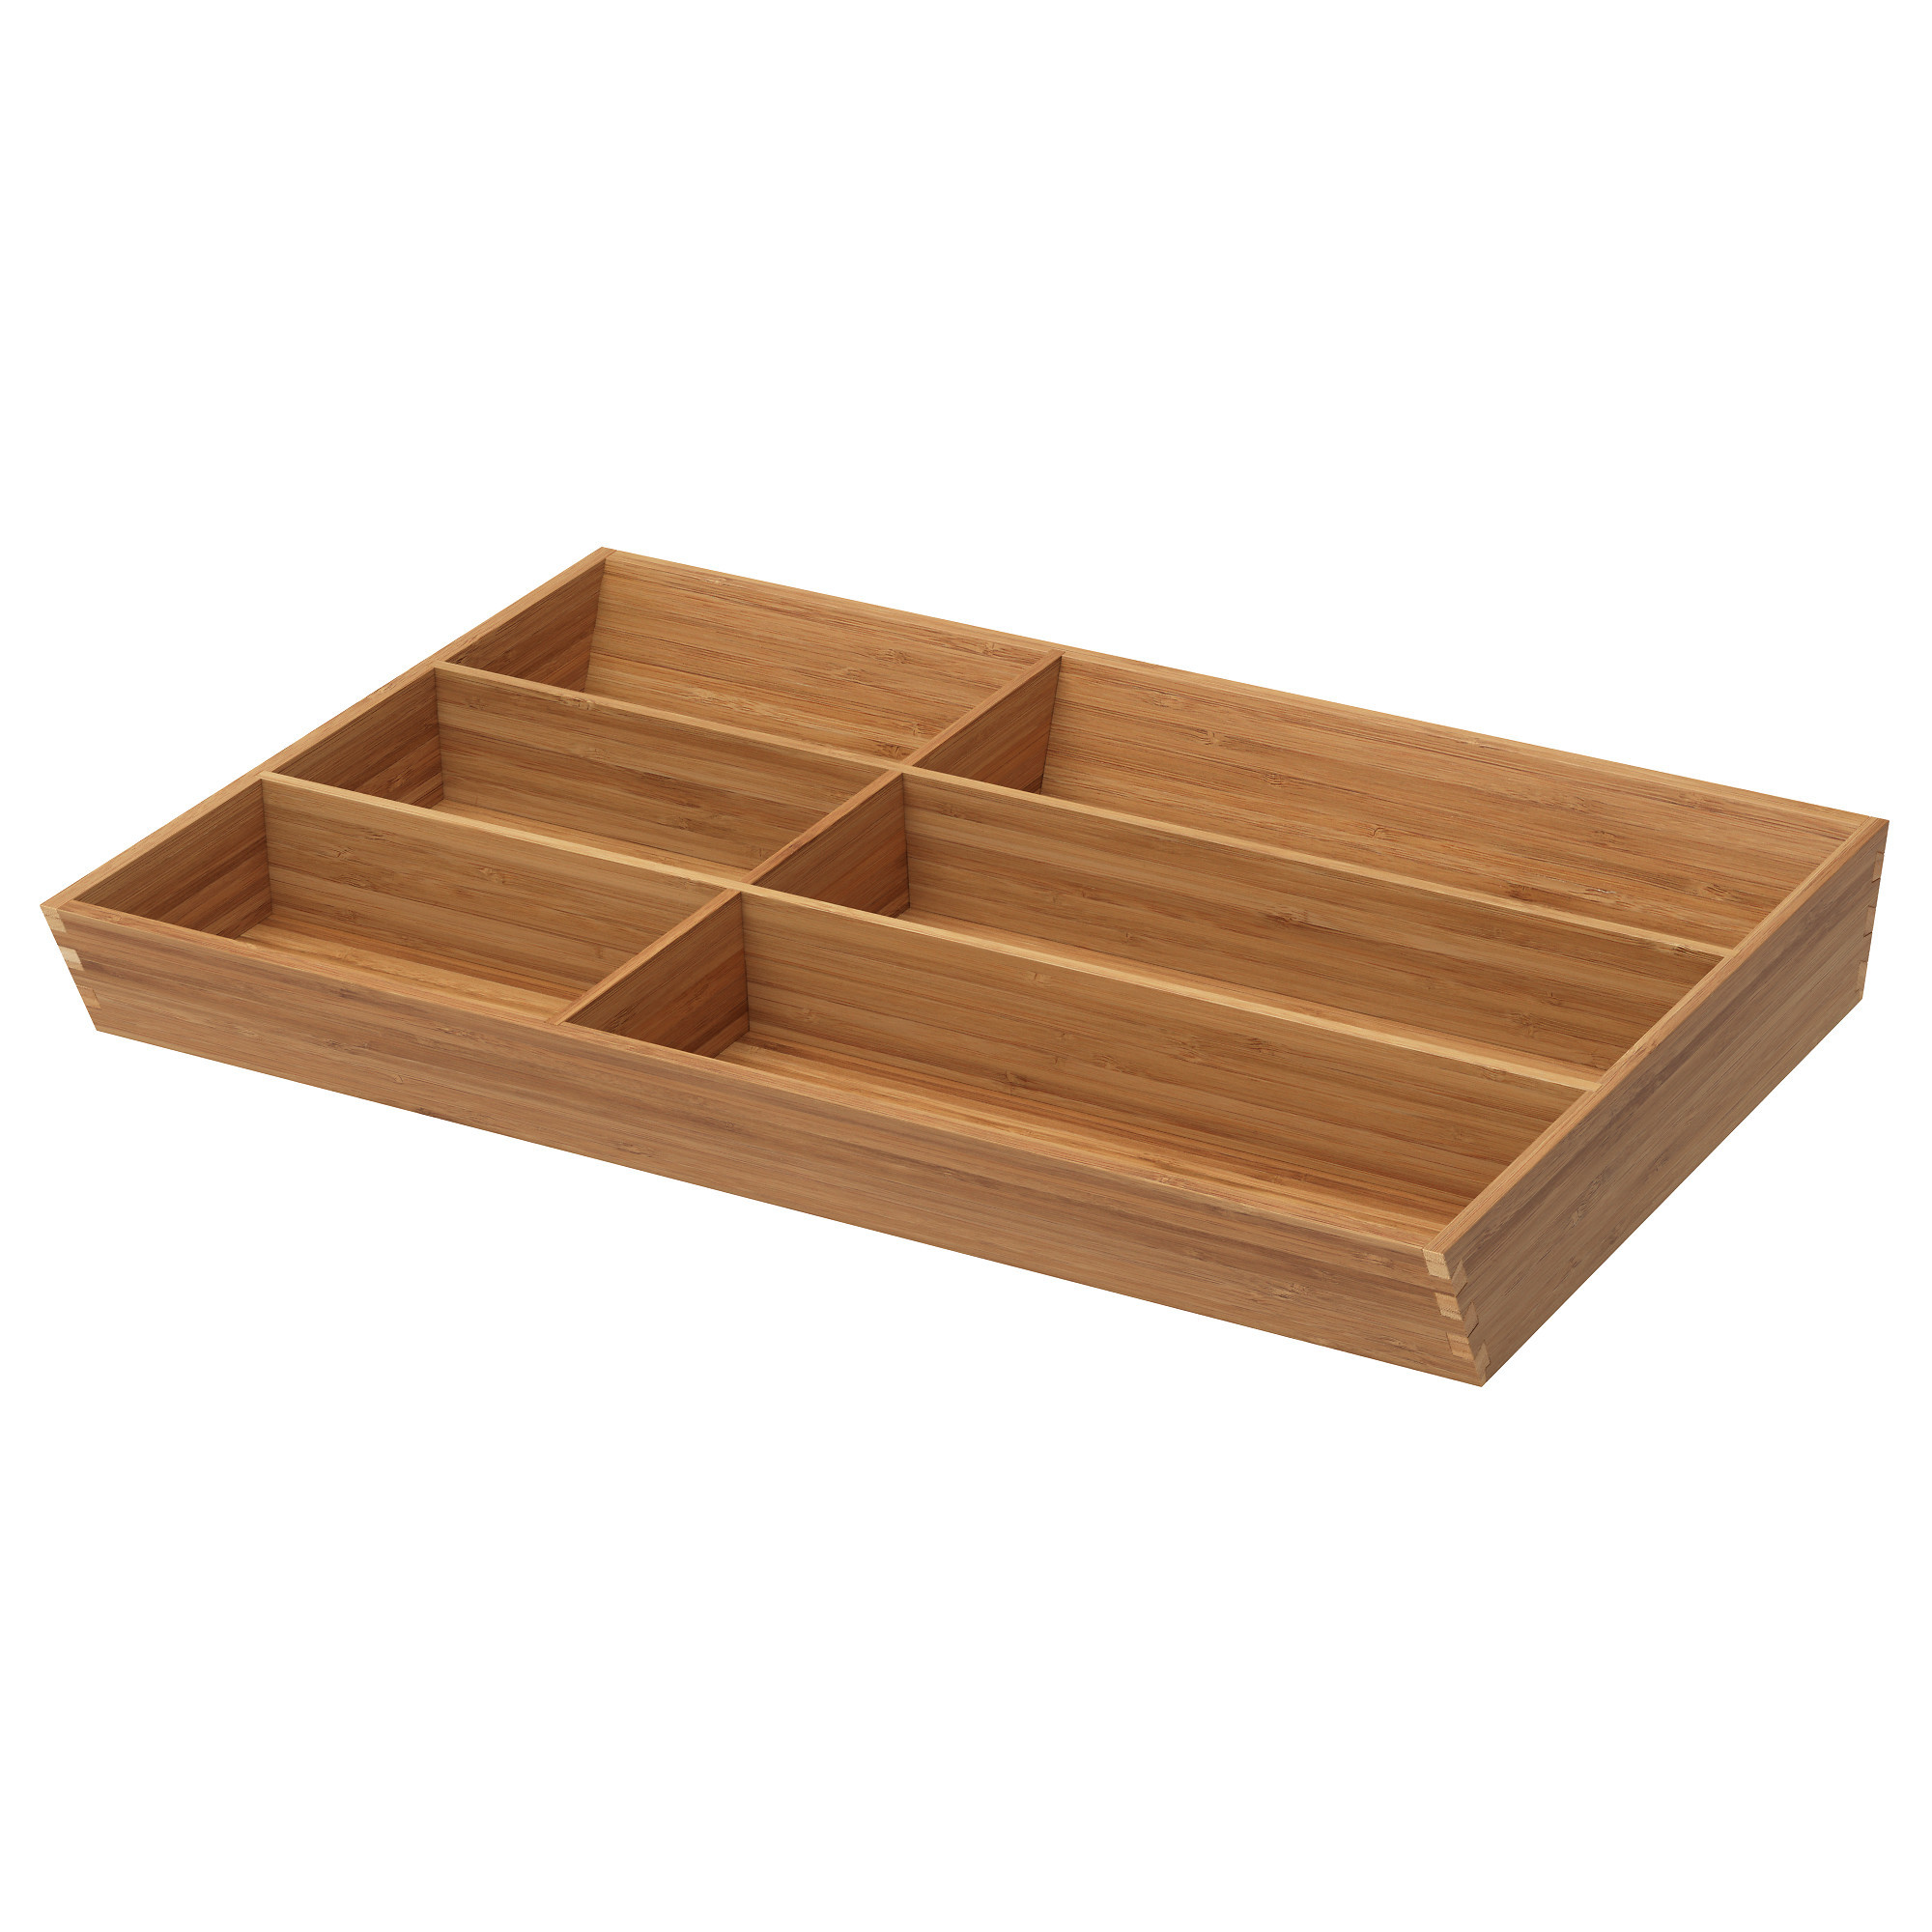 Ikea desk drawer organiser - Ikea desk drawer organizer ...